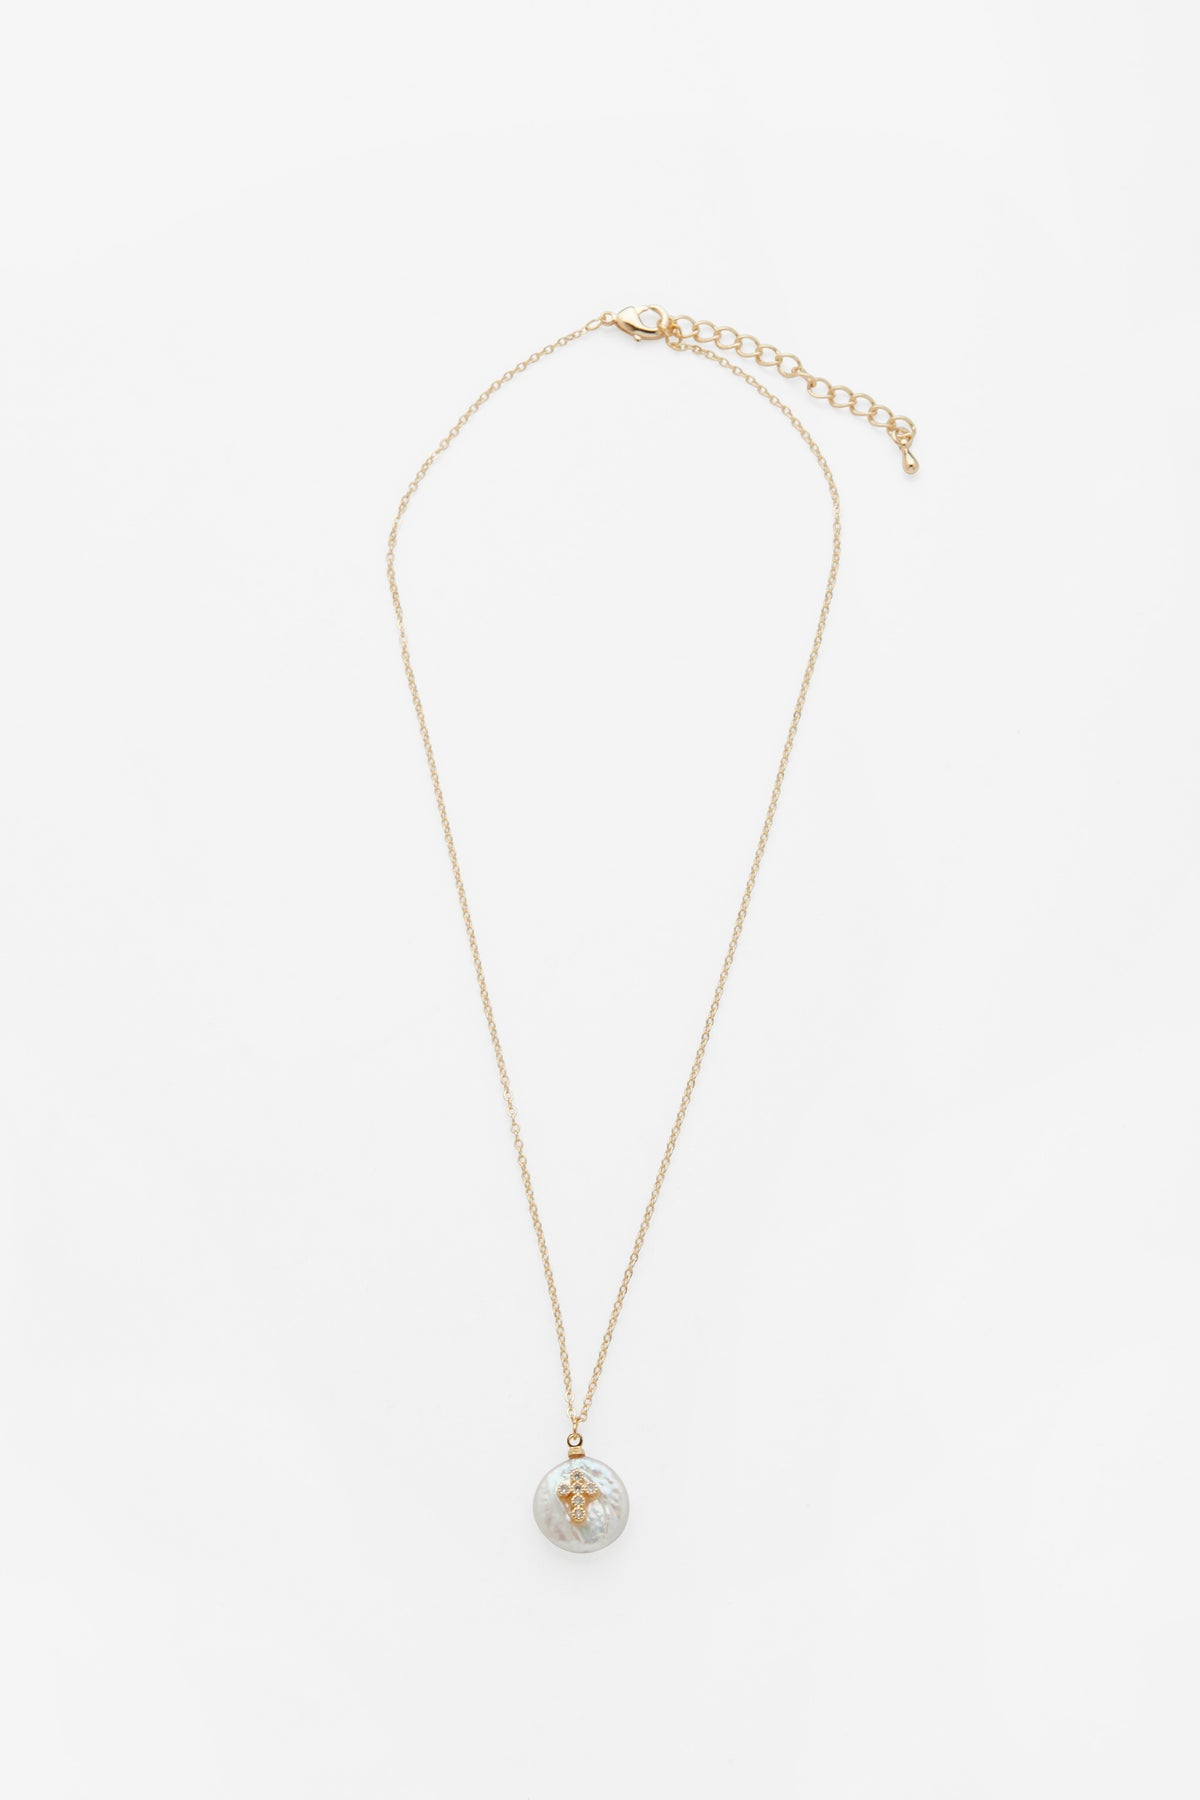 Paulette Necklace